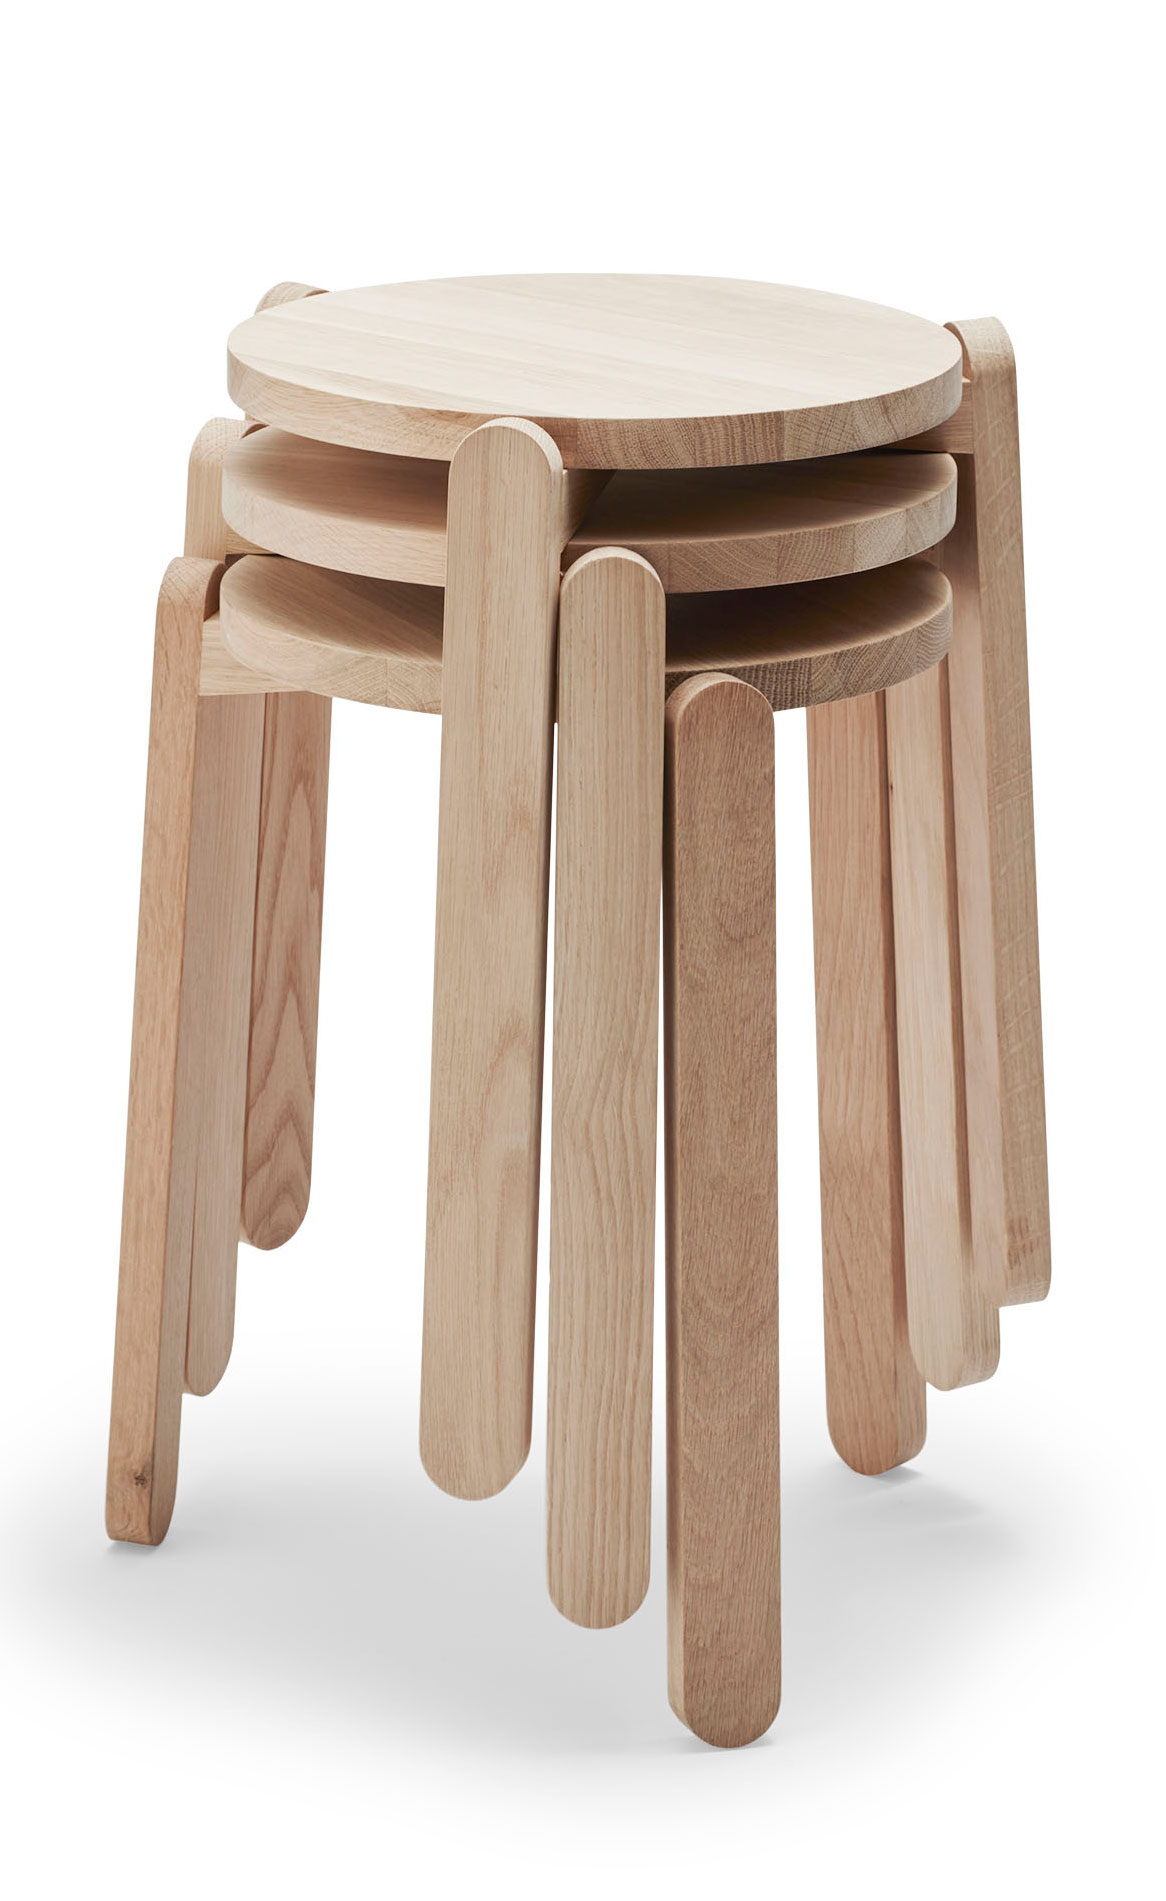 1930252-Nomad-Stool-Oak